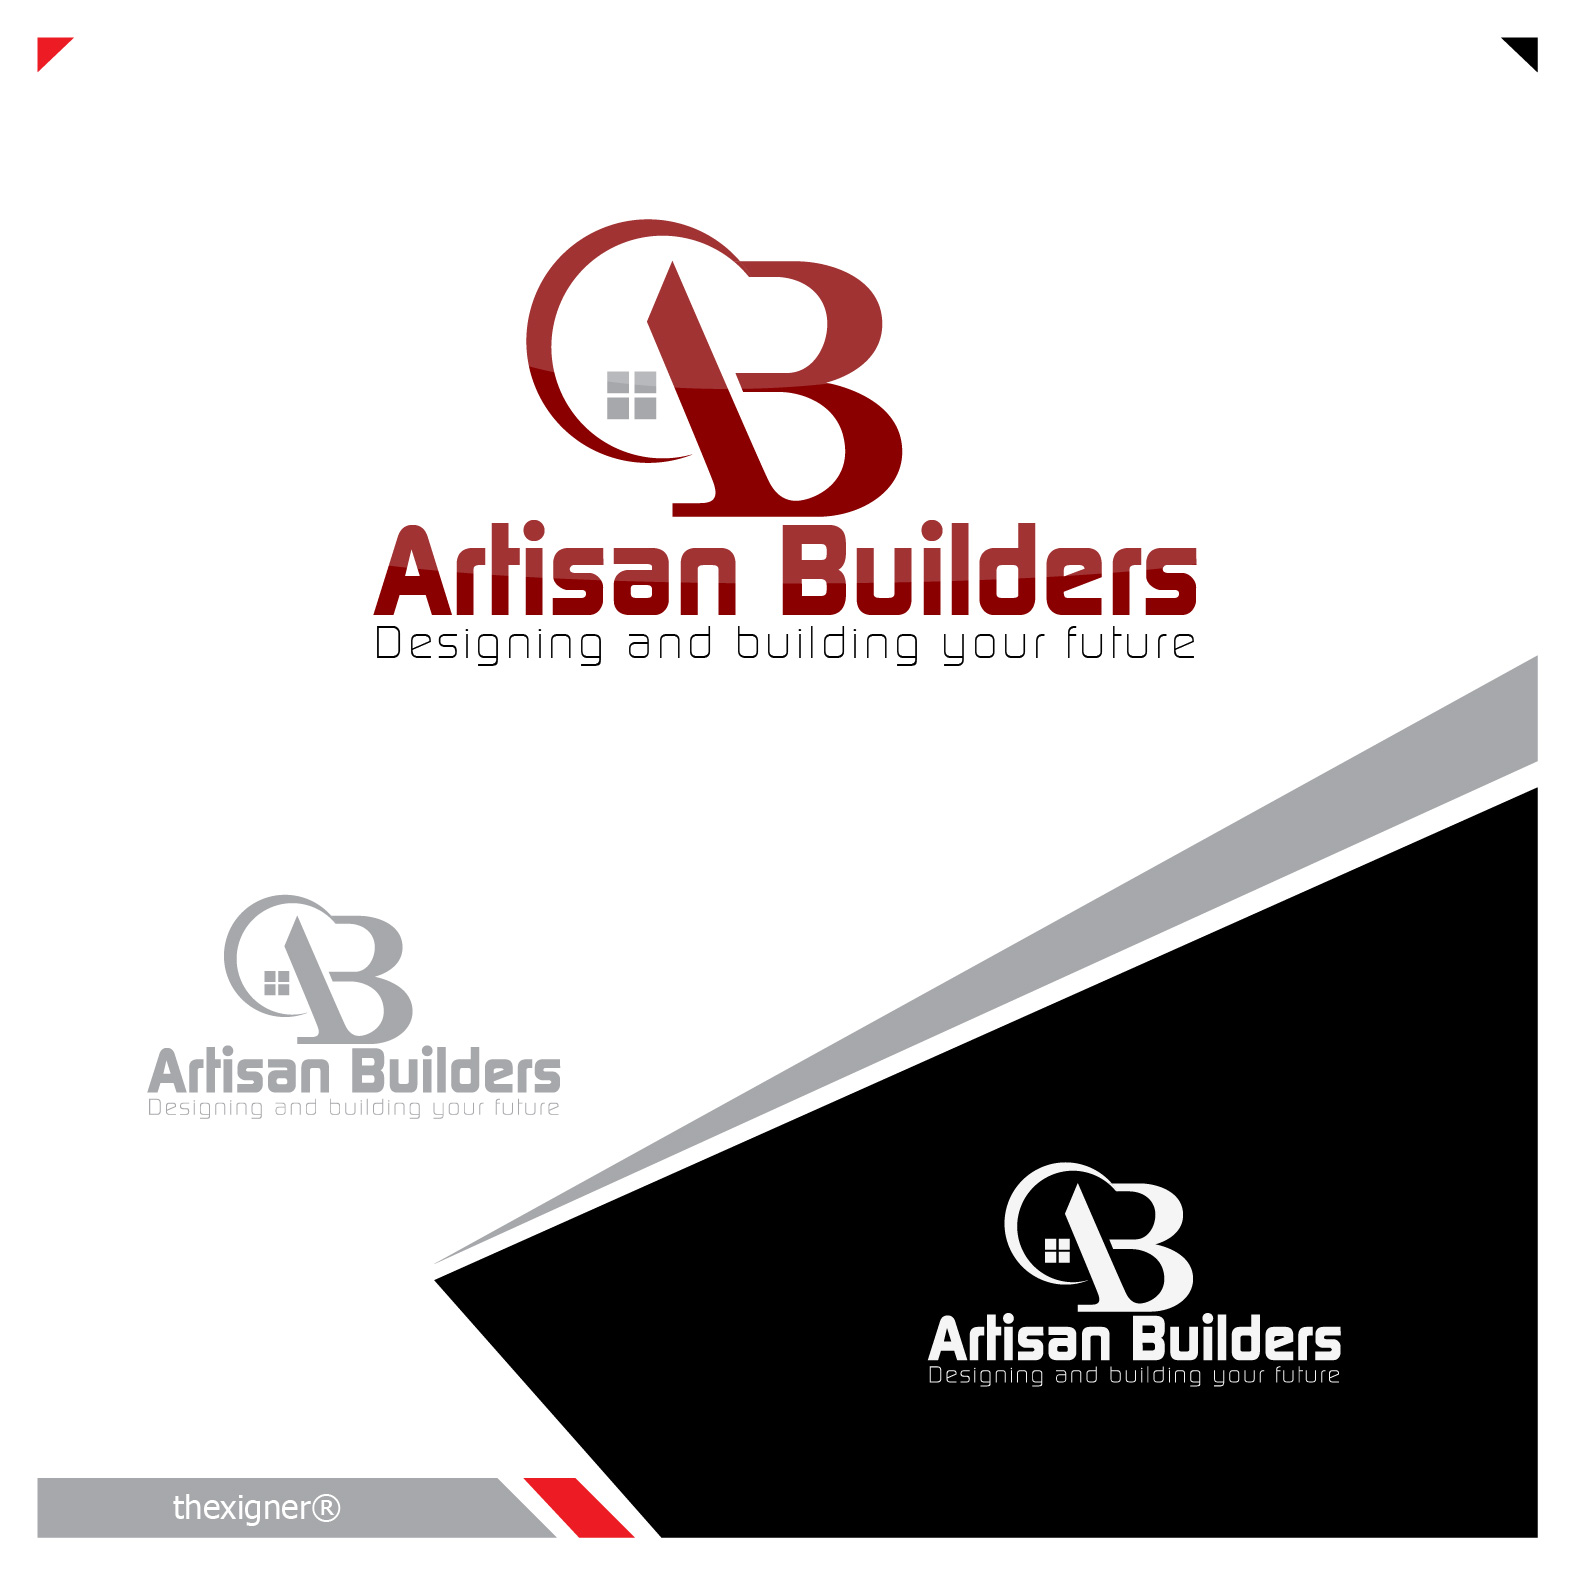 Logo Design by lagalag - Entry No. 104 in the Logo Design Contest Captivating Logo Design for Artisan Builders.